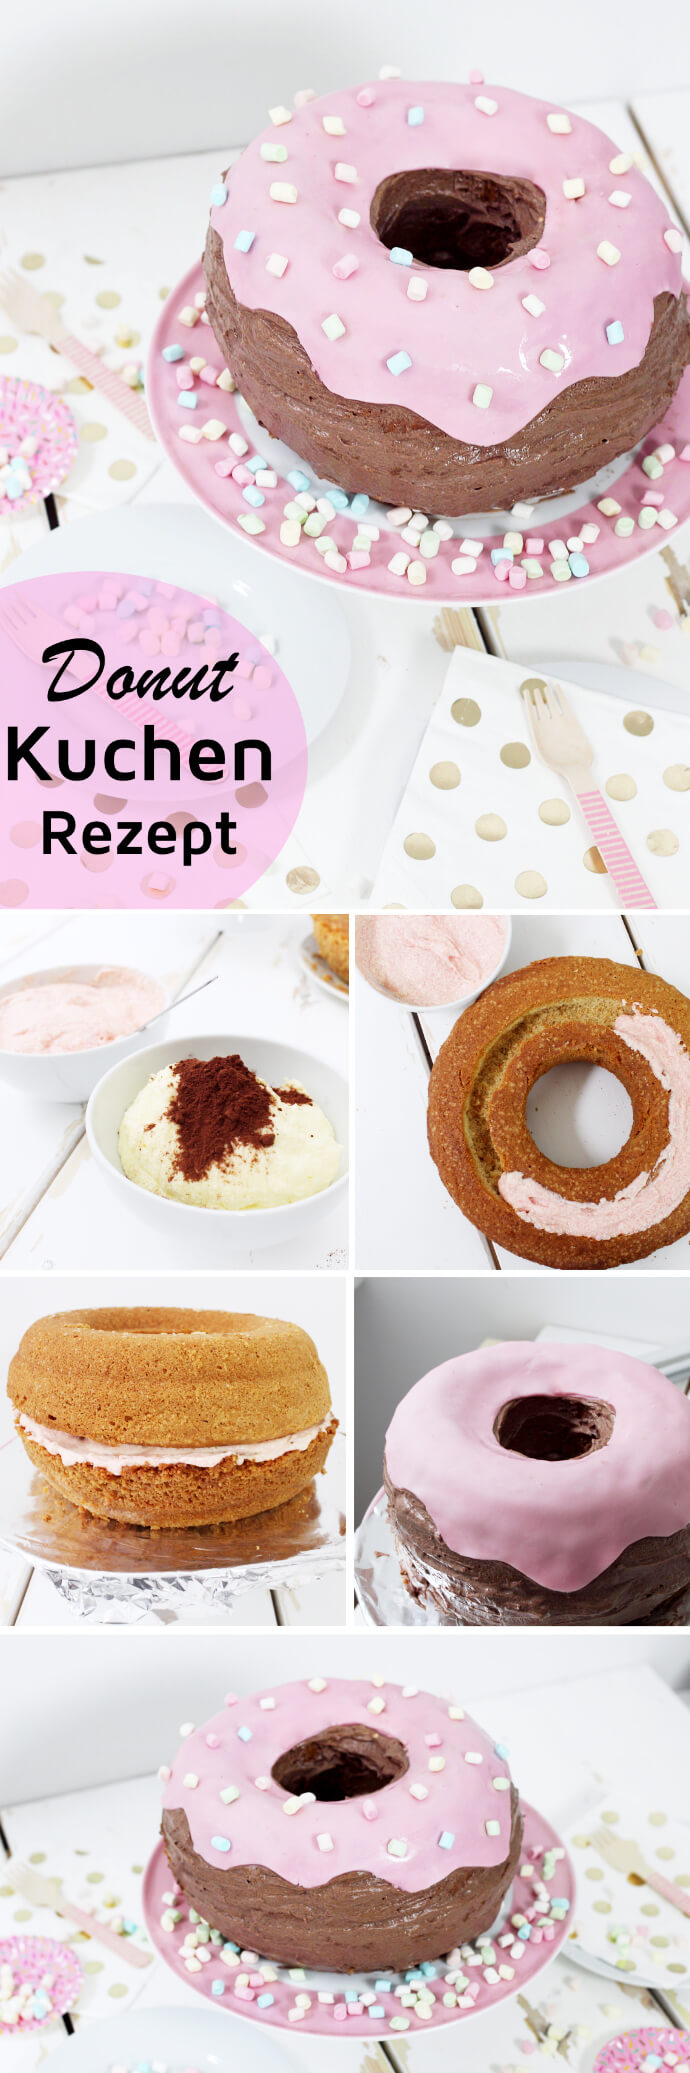 ausgefallene kuchen rezepte donut torte backen. Black Bedroom Furniture Sets. Home Design Ideas